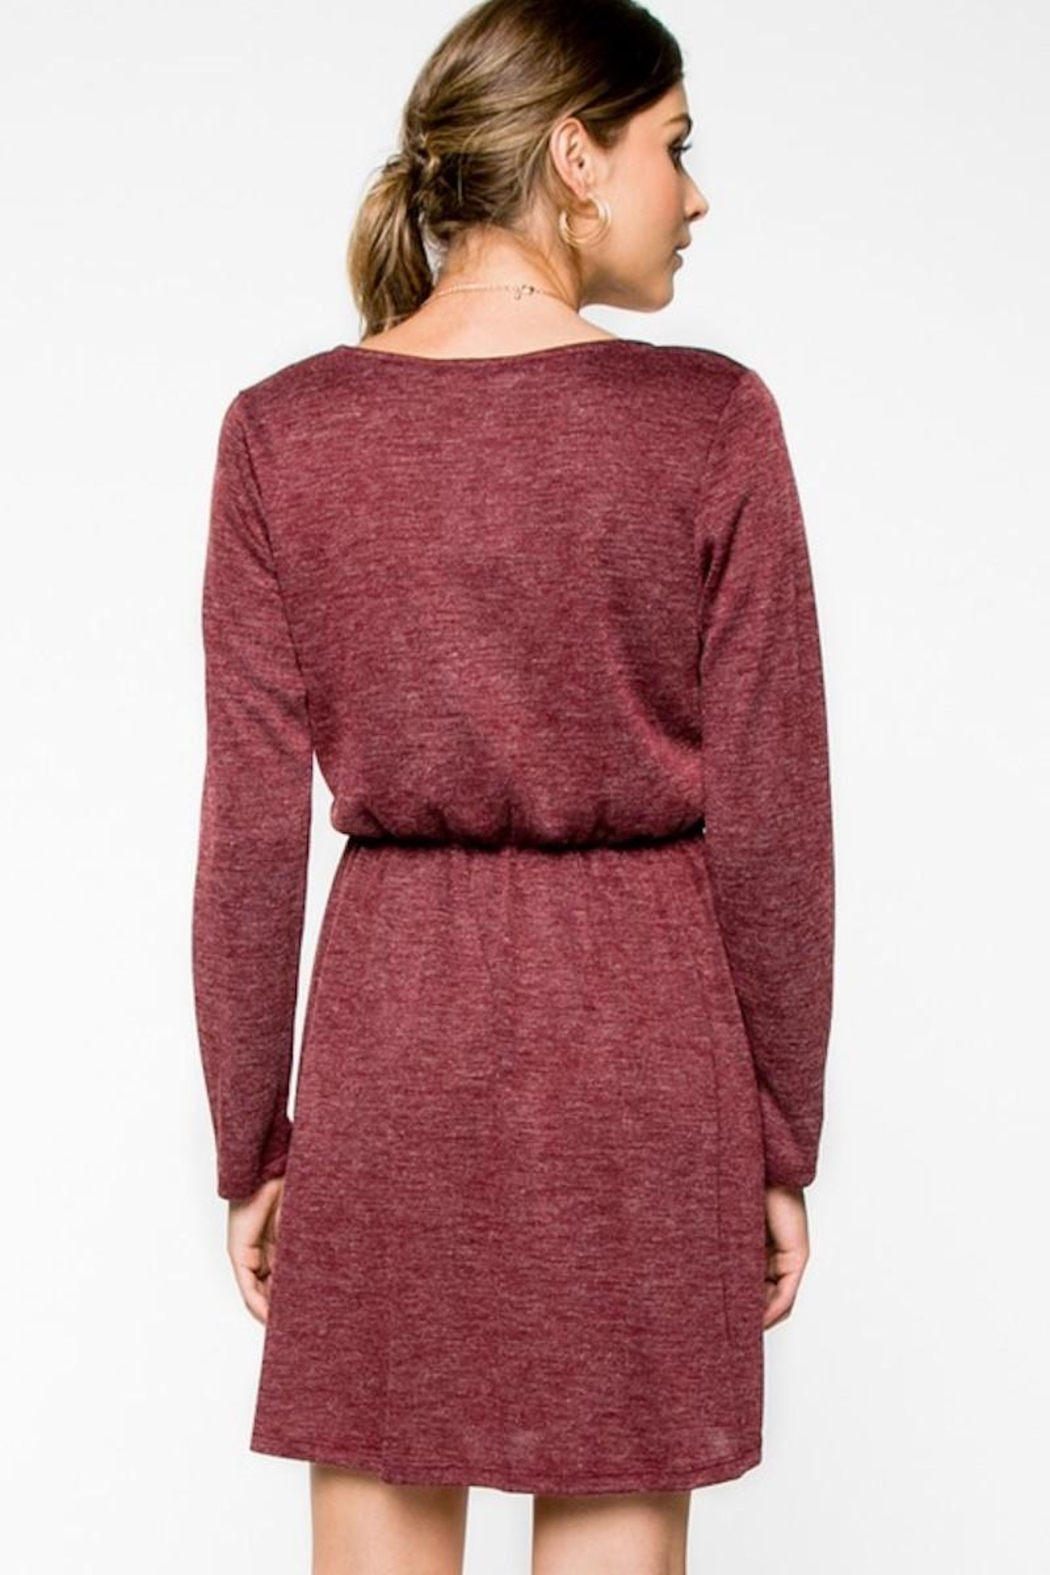 Everly Cranbery Wine Dress - Back Cropped Image